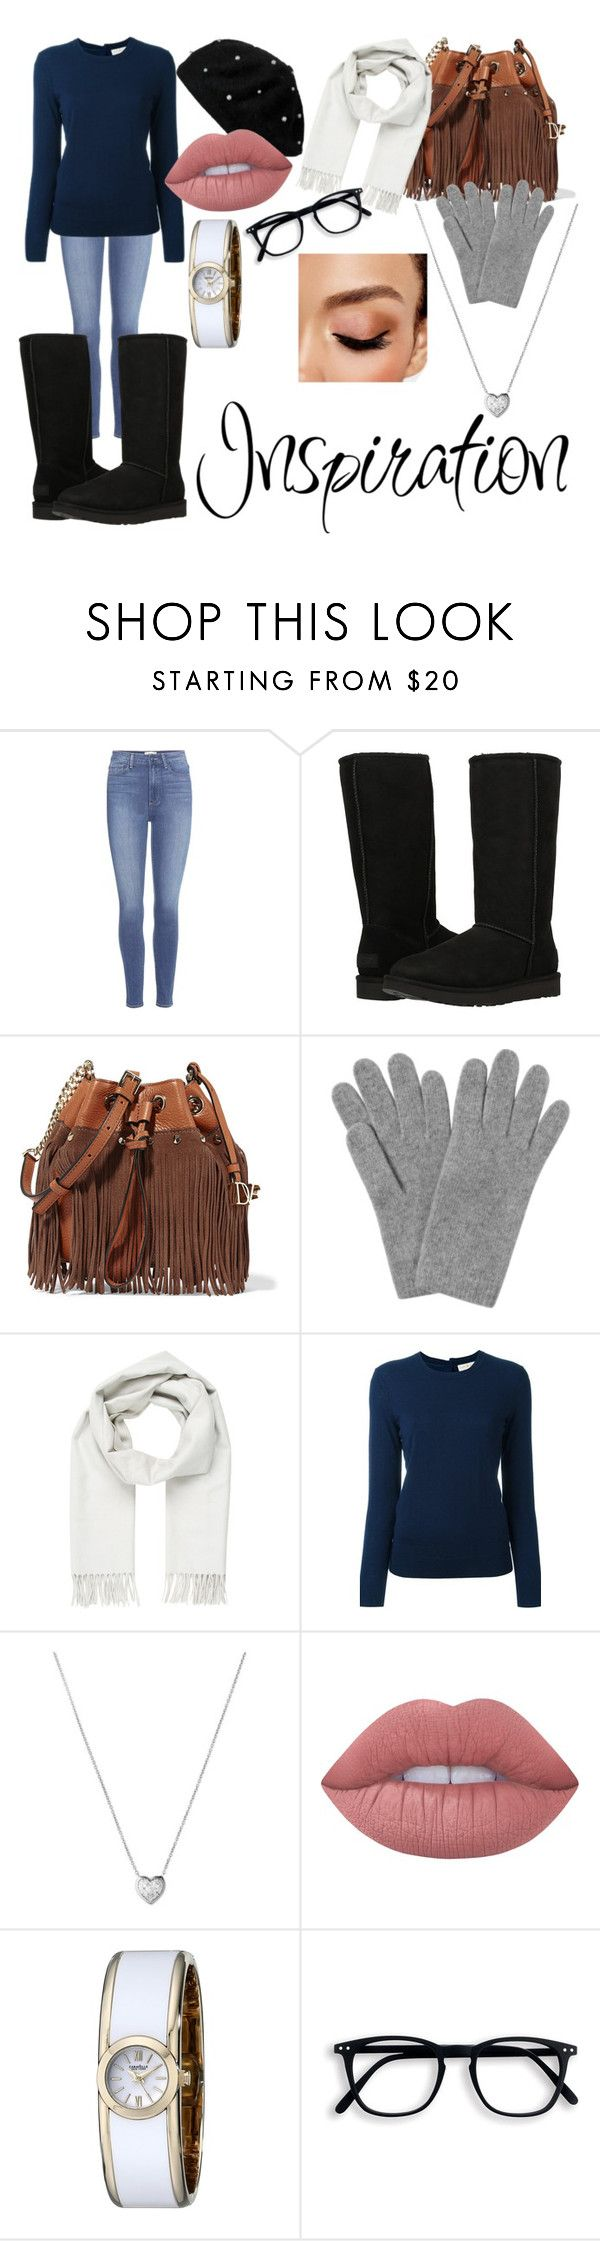 """New Years Eve ^^"" by mintyloverxoxo ❤ liked on Polyvore featuring Paige Denim, UGG Australia, Diane Von Furstenberg, L.K.Bennett, Brioni, Tory Burch, Links of London, Lime Crime, Caravelle by Bulova and Avon"